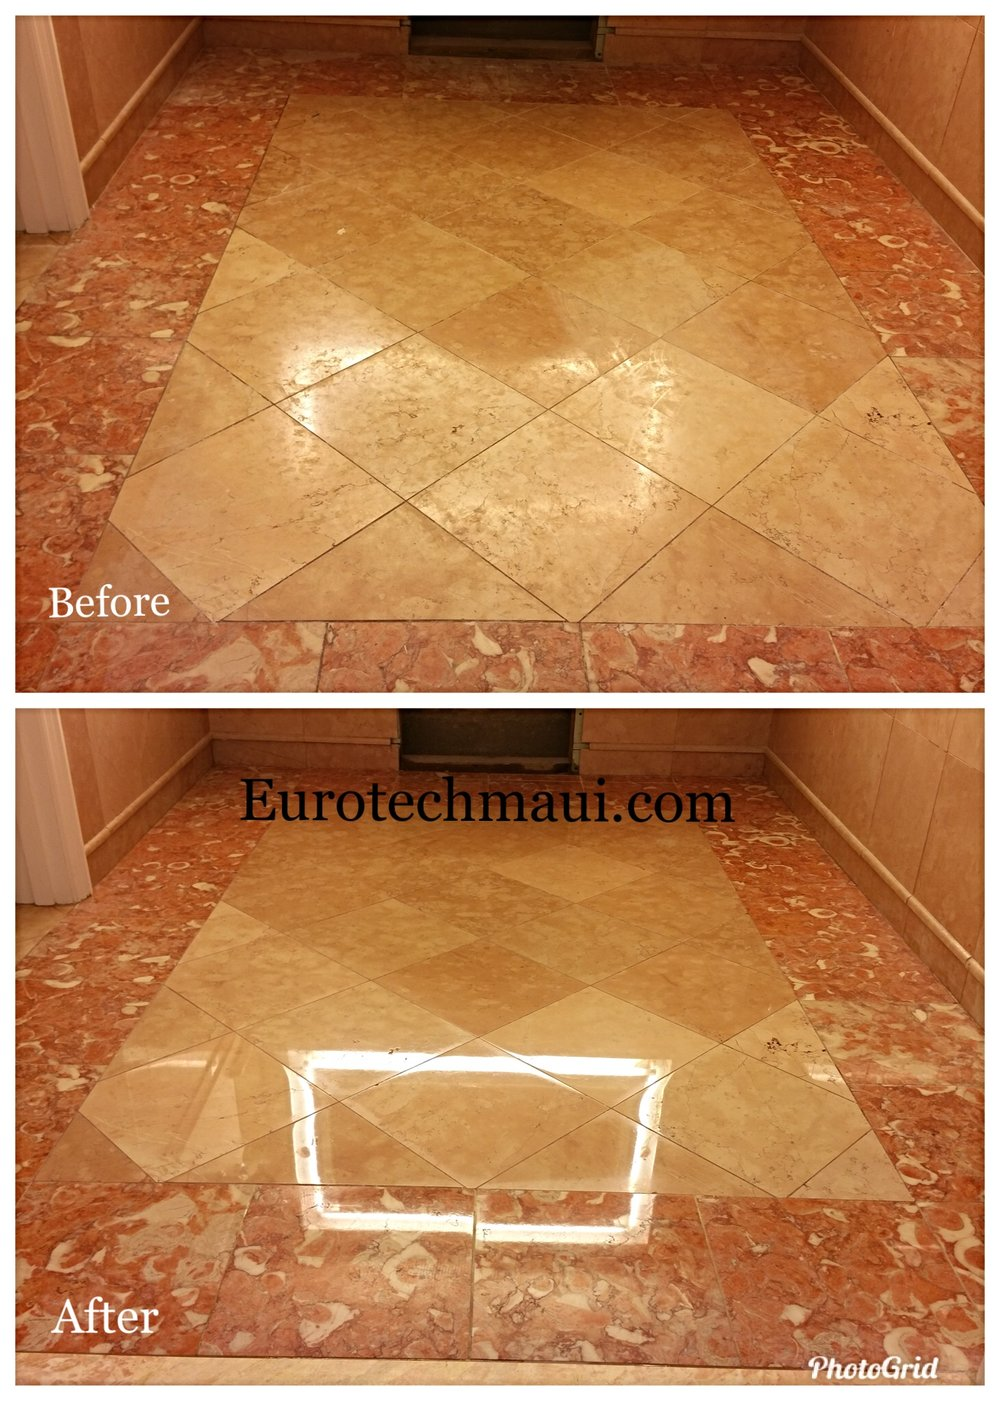 light reflection in after polish on marble flooring in a large resort